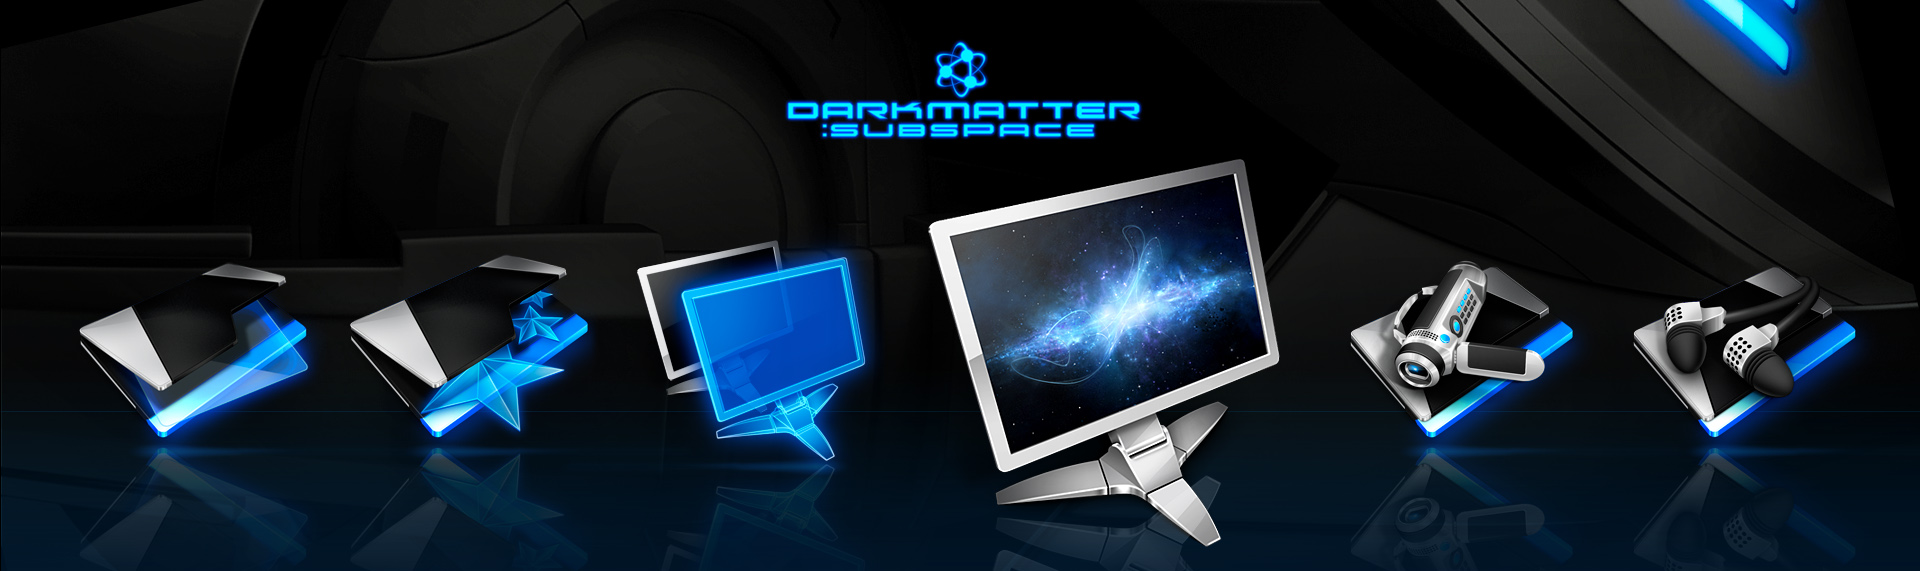 DarkMatter: Quadrilogy Windows Desktop Icon Set  Client: The Skins Factory  Four unbelievably slick icon sets that completely transformed your Windows desktop into a super-futuristic, hi-tech environment. The Skins Factory's icon design team doesnt simply push the envelope, it shreds it. It was powered by The Skins Factory's advanced Hyperdesk Windows desktop theming solution.